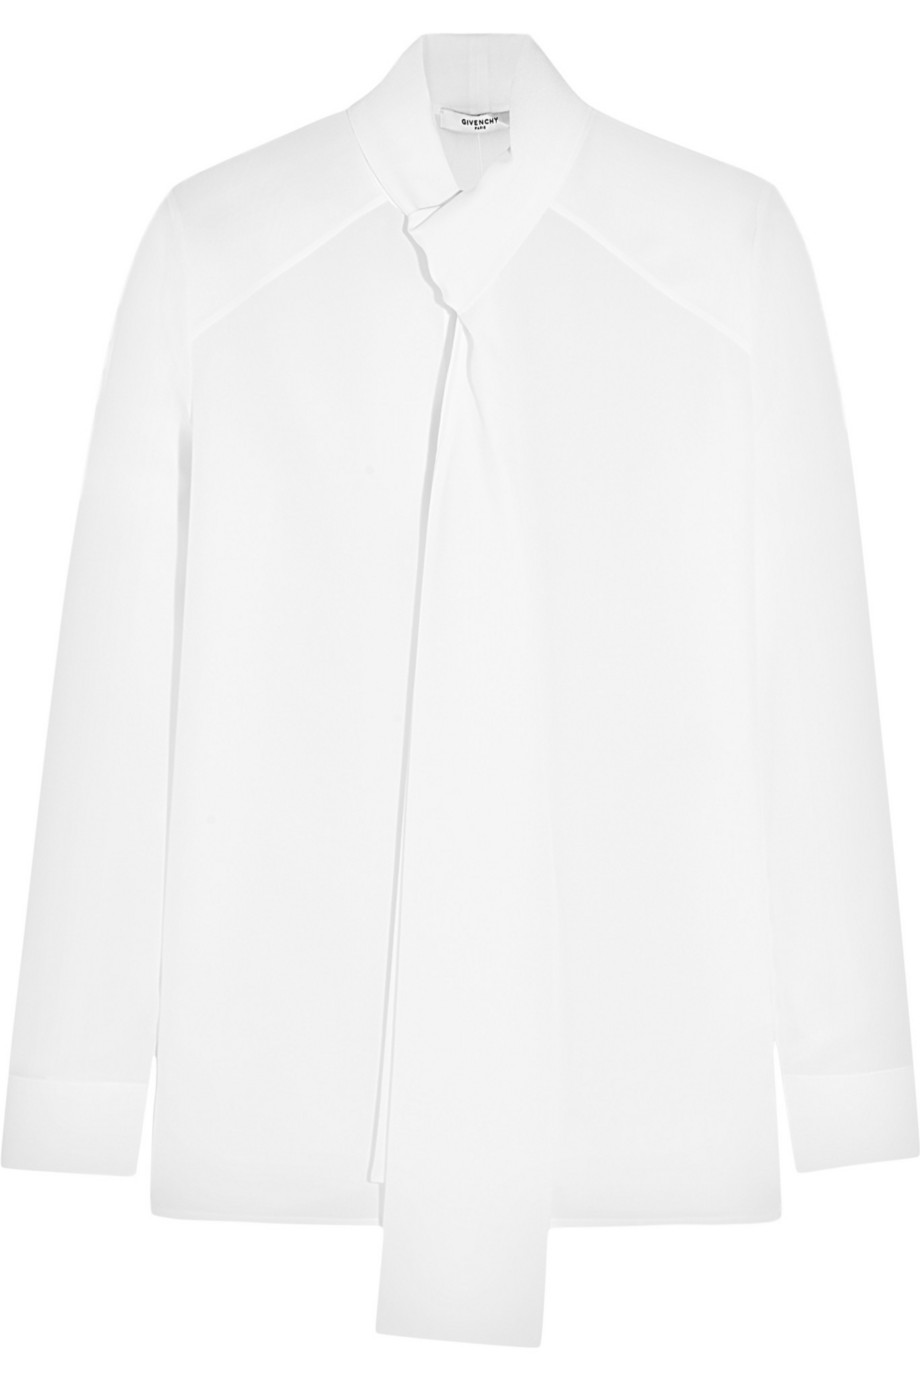 Givenchy Pussy-Bow Blouse in White Silk Crepe De Chine, Women's, Size: 34